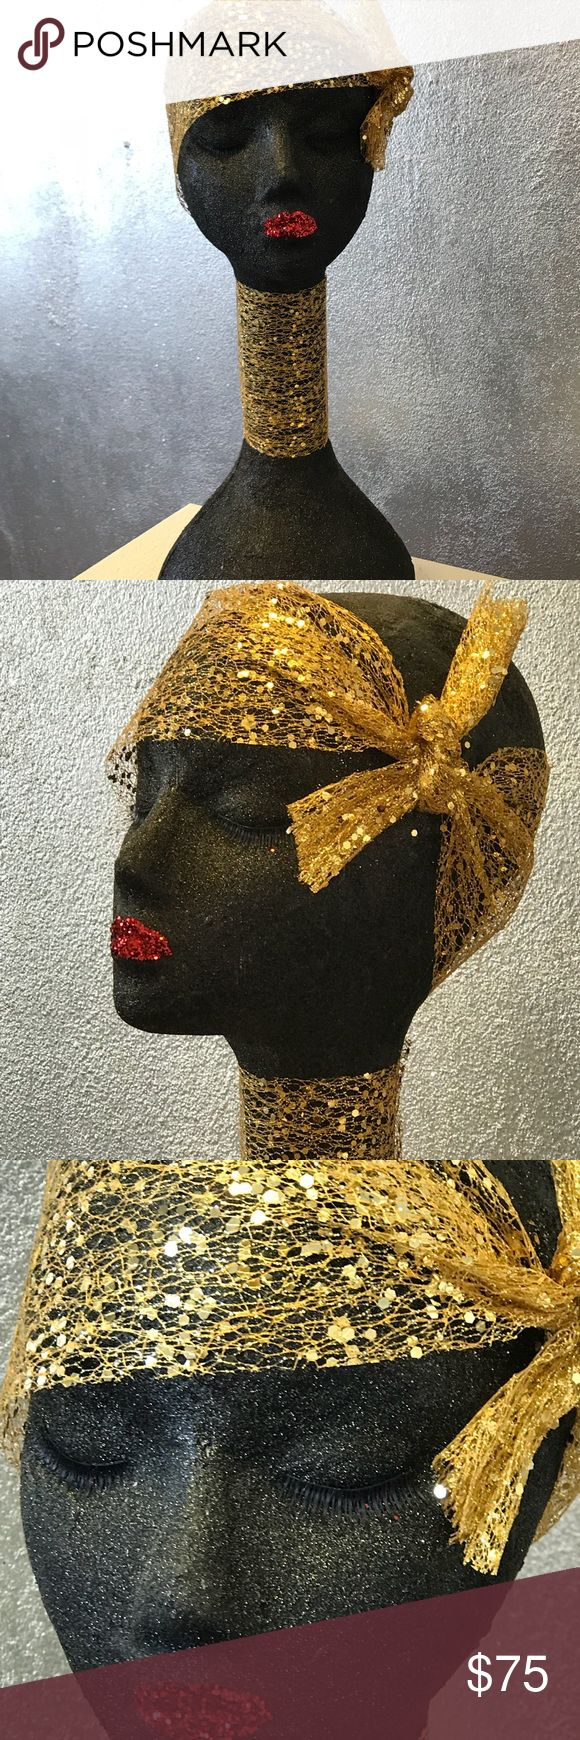 Own a Salon or Boutique Mannequins Heads are avail Customize Your Wig or Hat Stand with this Hand Crafted Mannequin She is for Sale Other